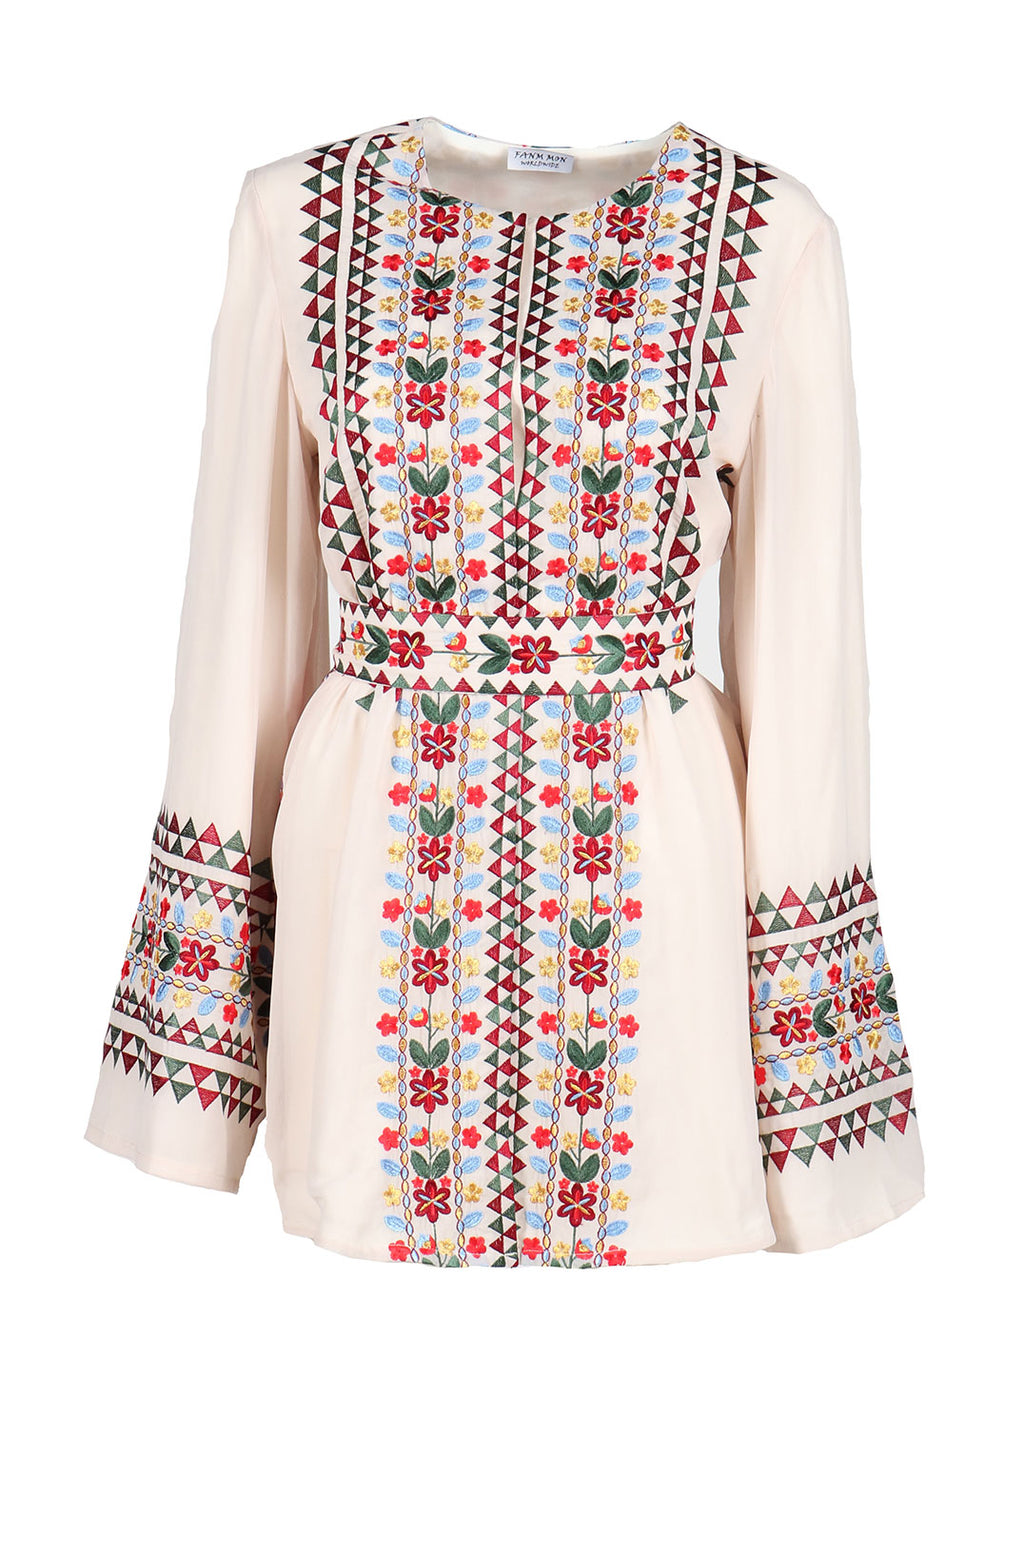 Fanm Mon Cream Silk Moroccan Style Multicolor Embroidery MINI Dress Size M/L Available MNXI0102